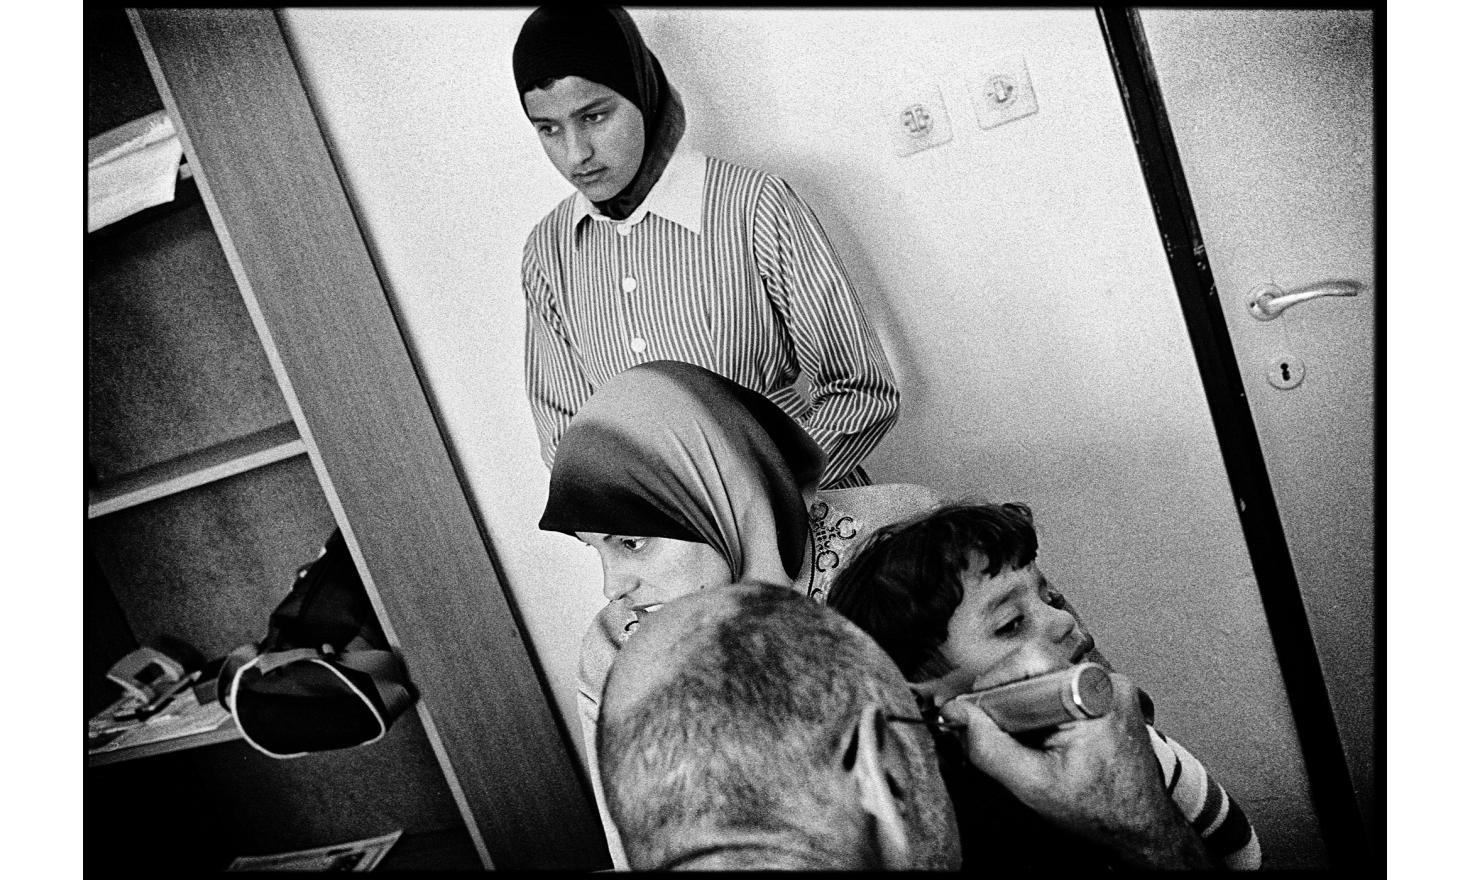 """Israeli members of the """"physicians for human rights"""" come every saturday in the occupied palestinian territories. They give free care in places without doctors or hospitals. Qalqilya, Palestinian Autority. April 2004."""